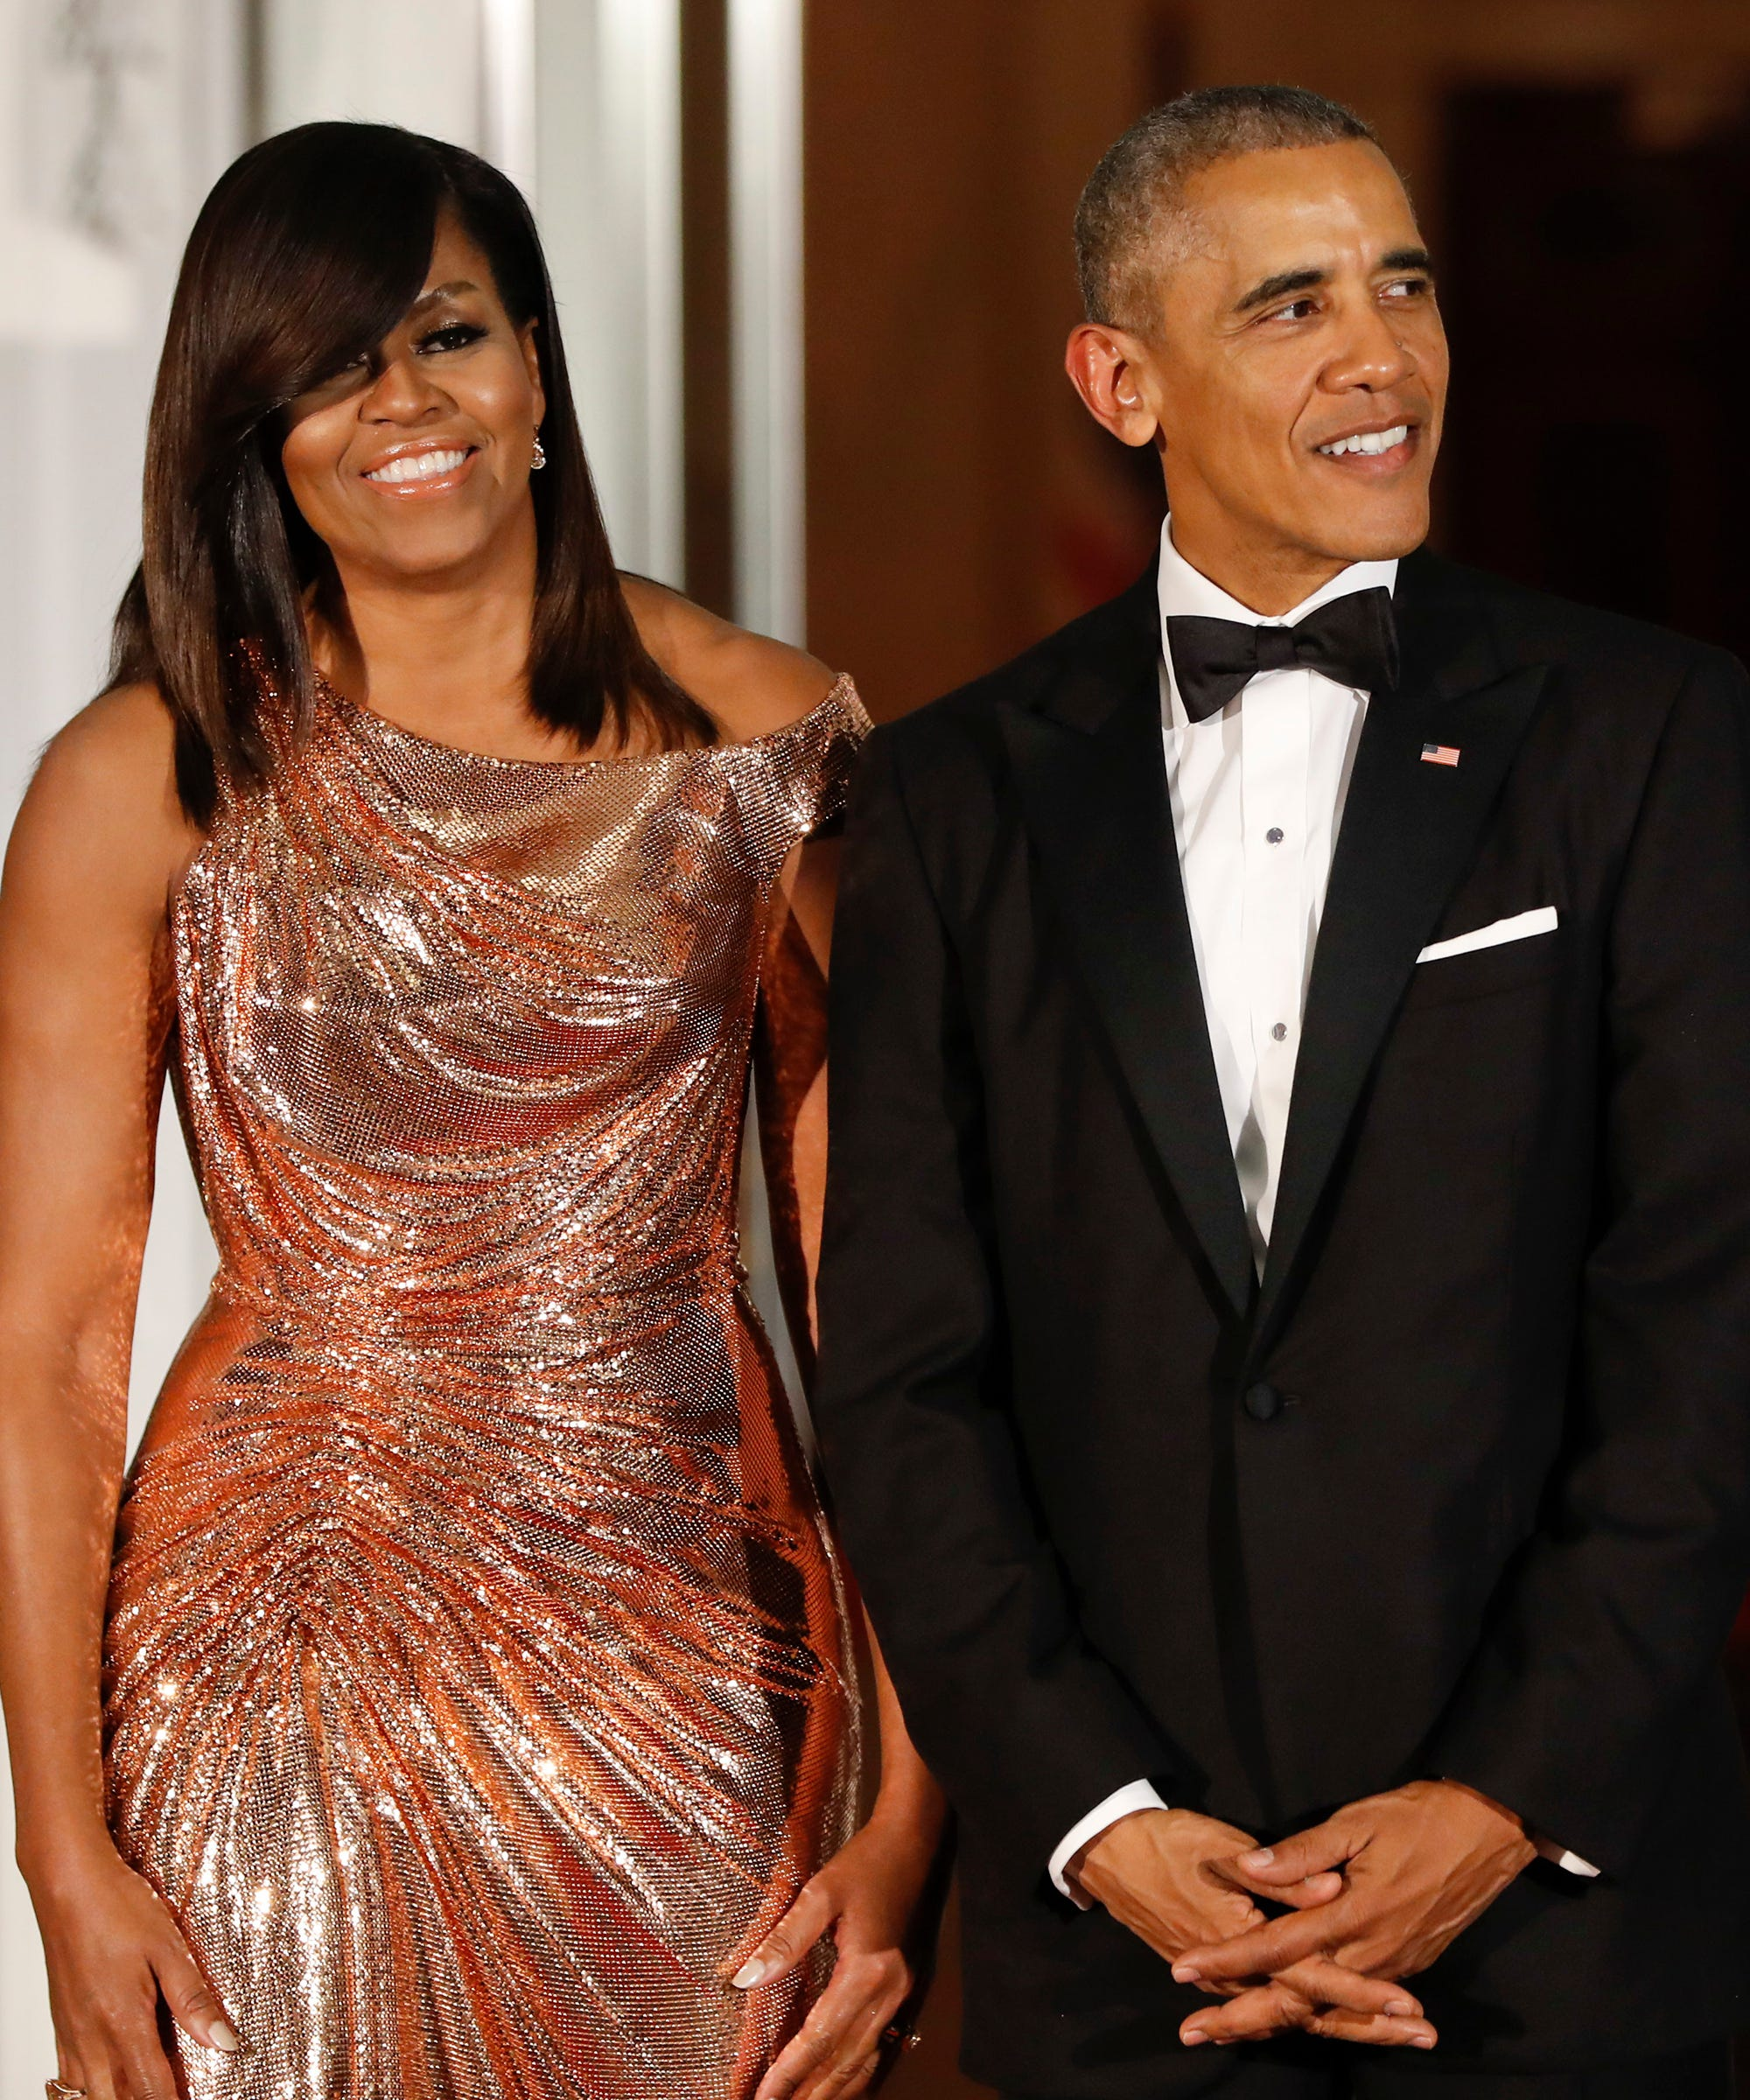 Shows & Movies The Obamas Are Bringing To Netflix After American Factory